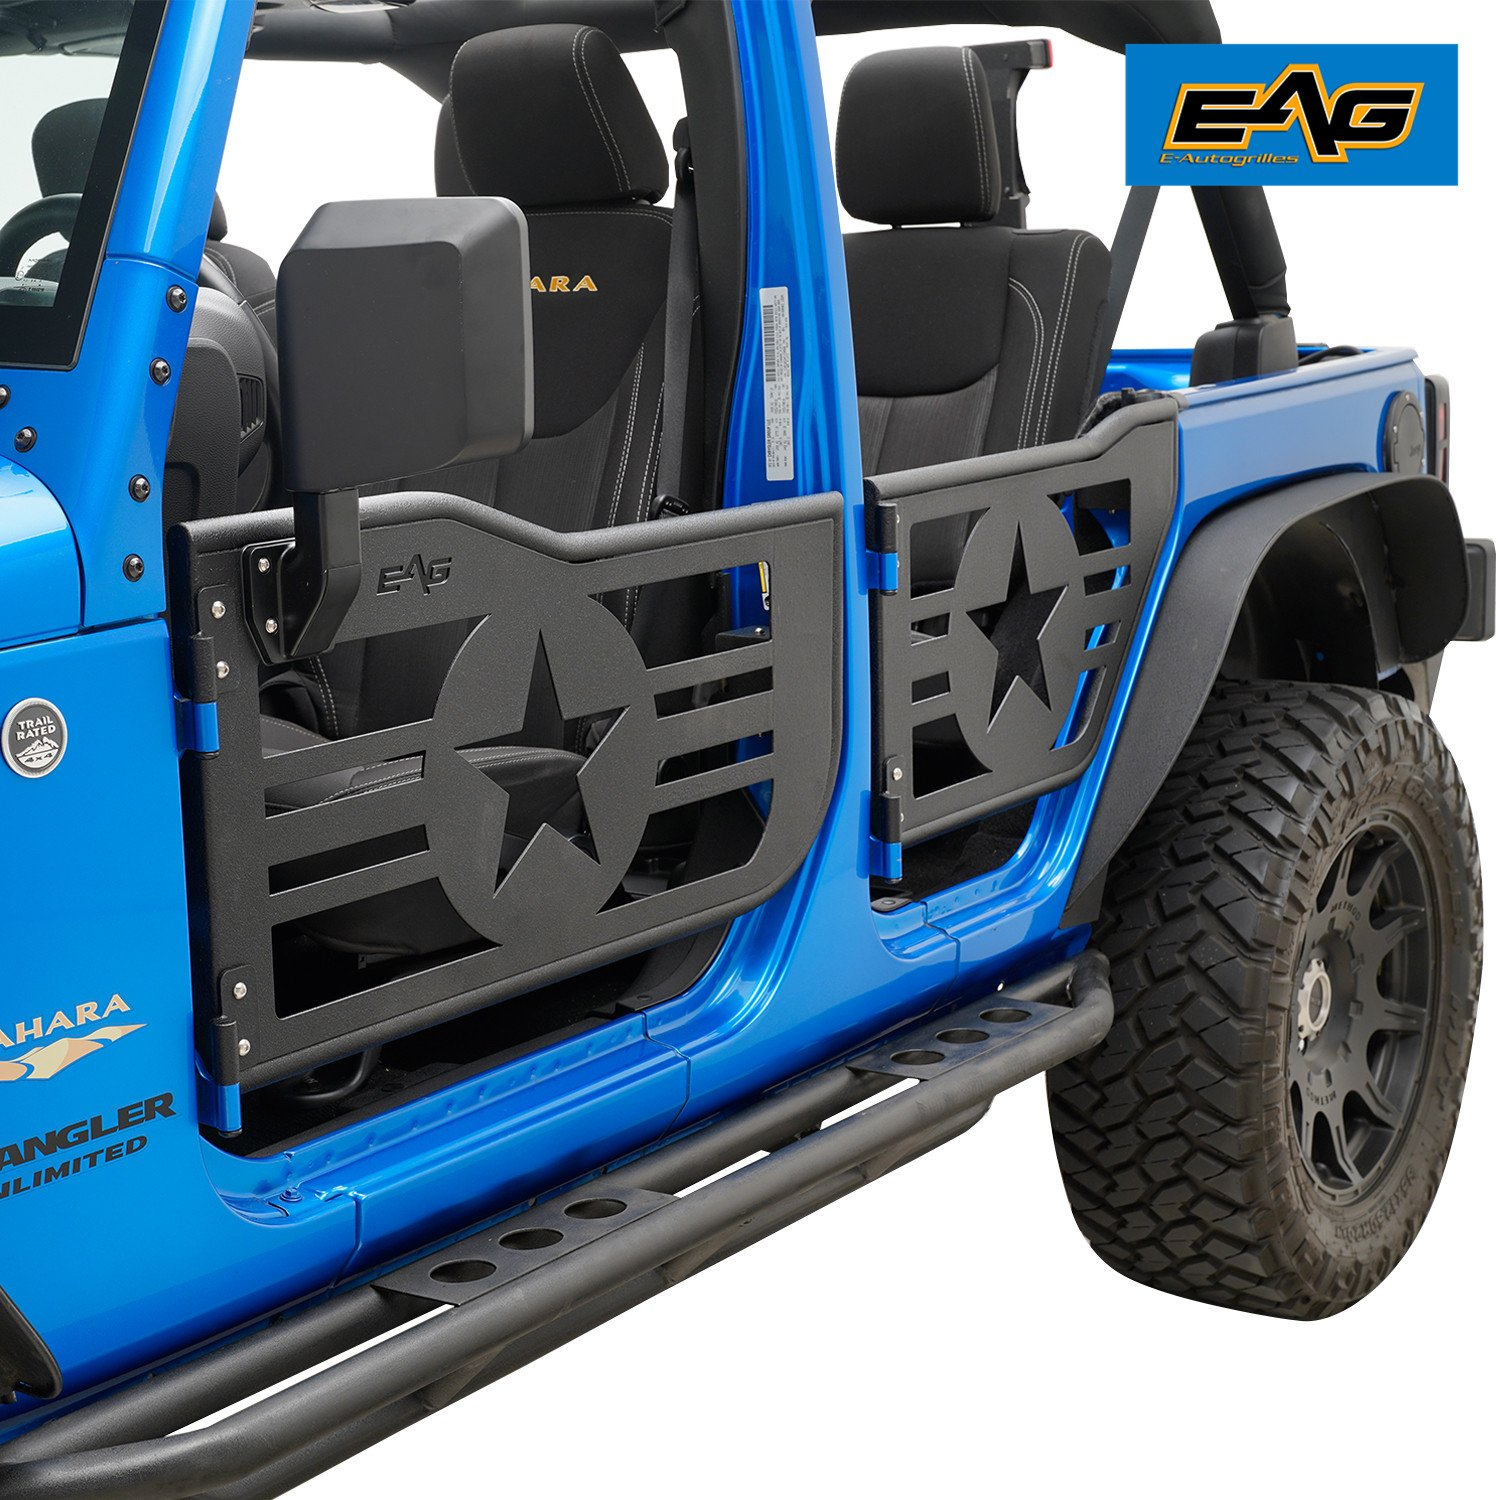 EAG Military Star Tubular 4 Door With Side View Mirrors for 07-18 Jeep Wrangler JK 4 Door Only